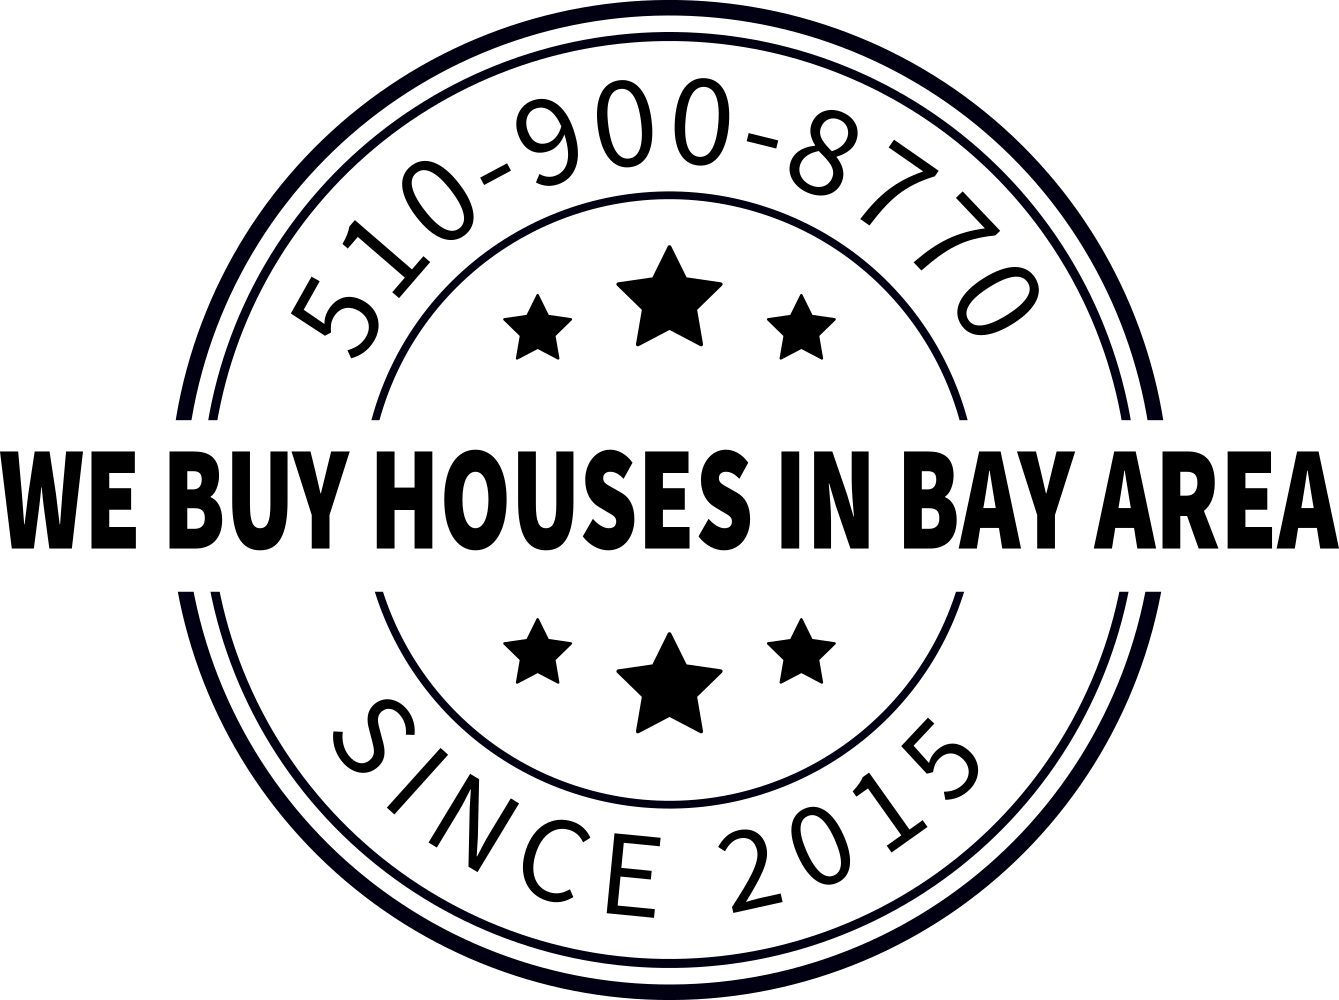 We Buy Houses In Bay Area - Sell The Home Without Agents and Commissions